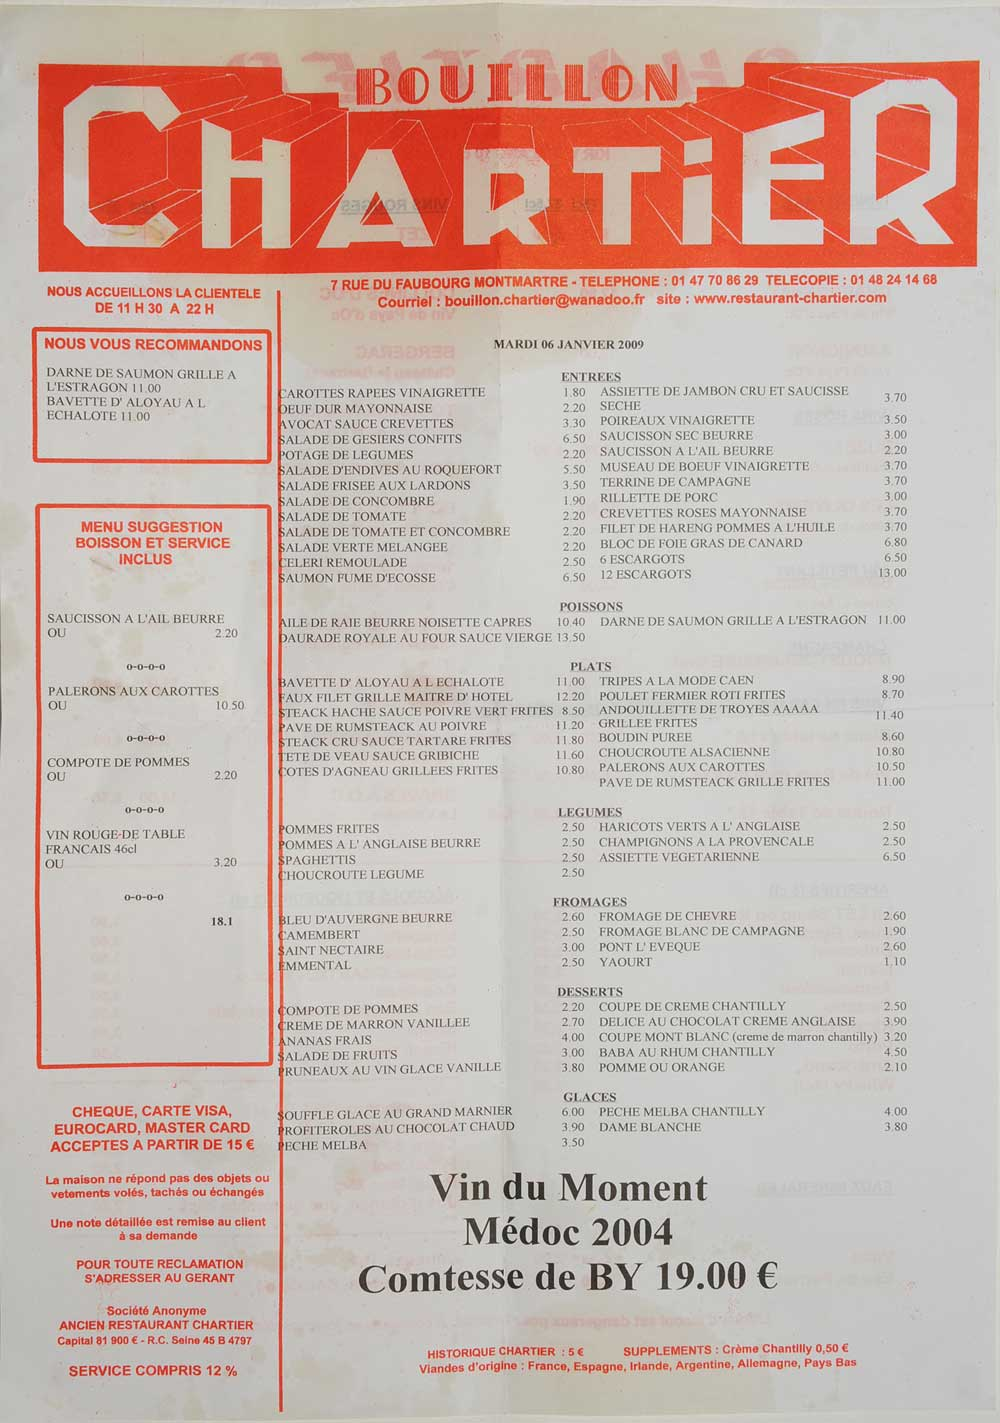 Cheap Restaurants In Paris France With Menus And Prices